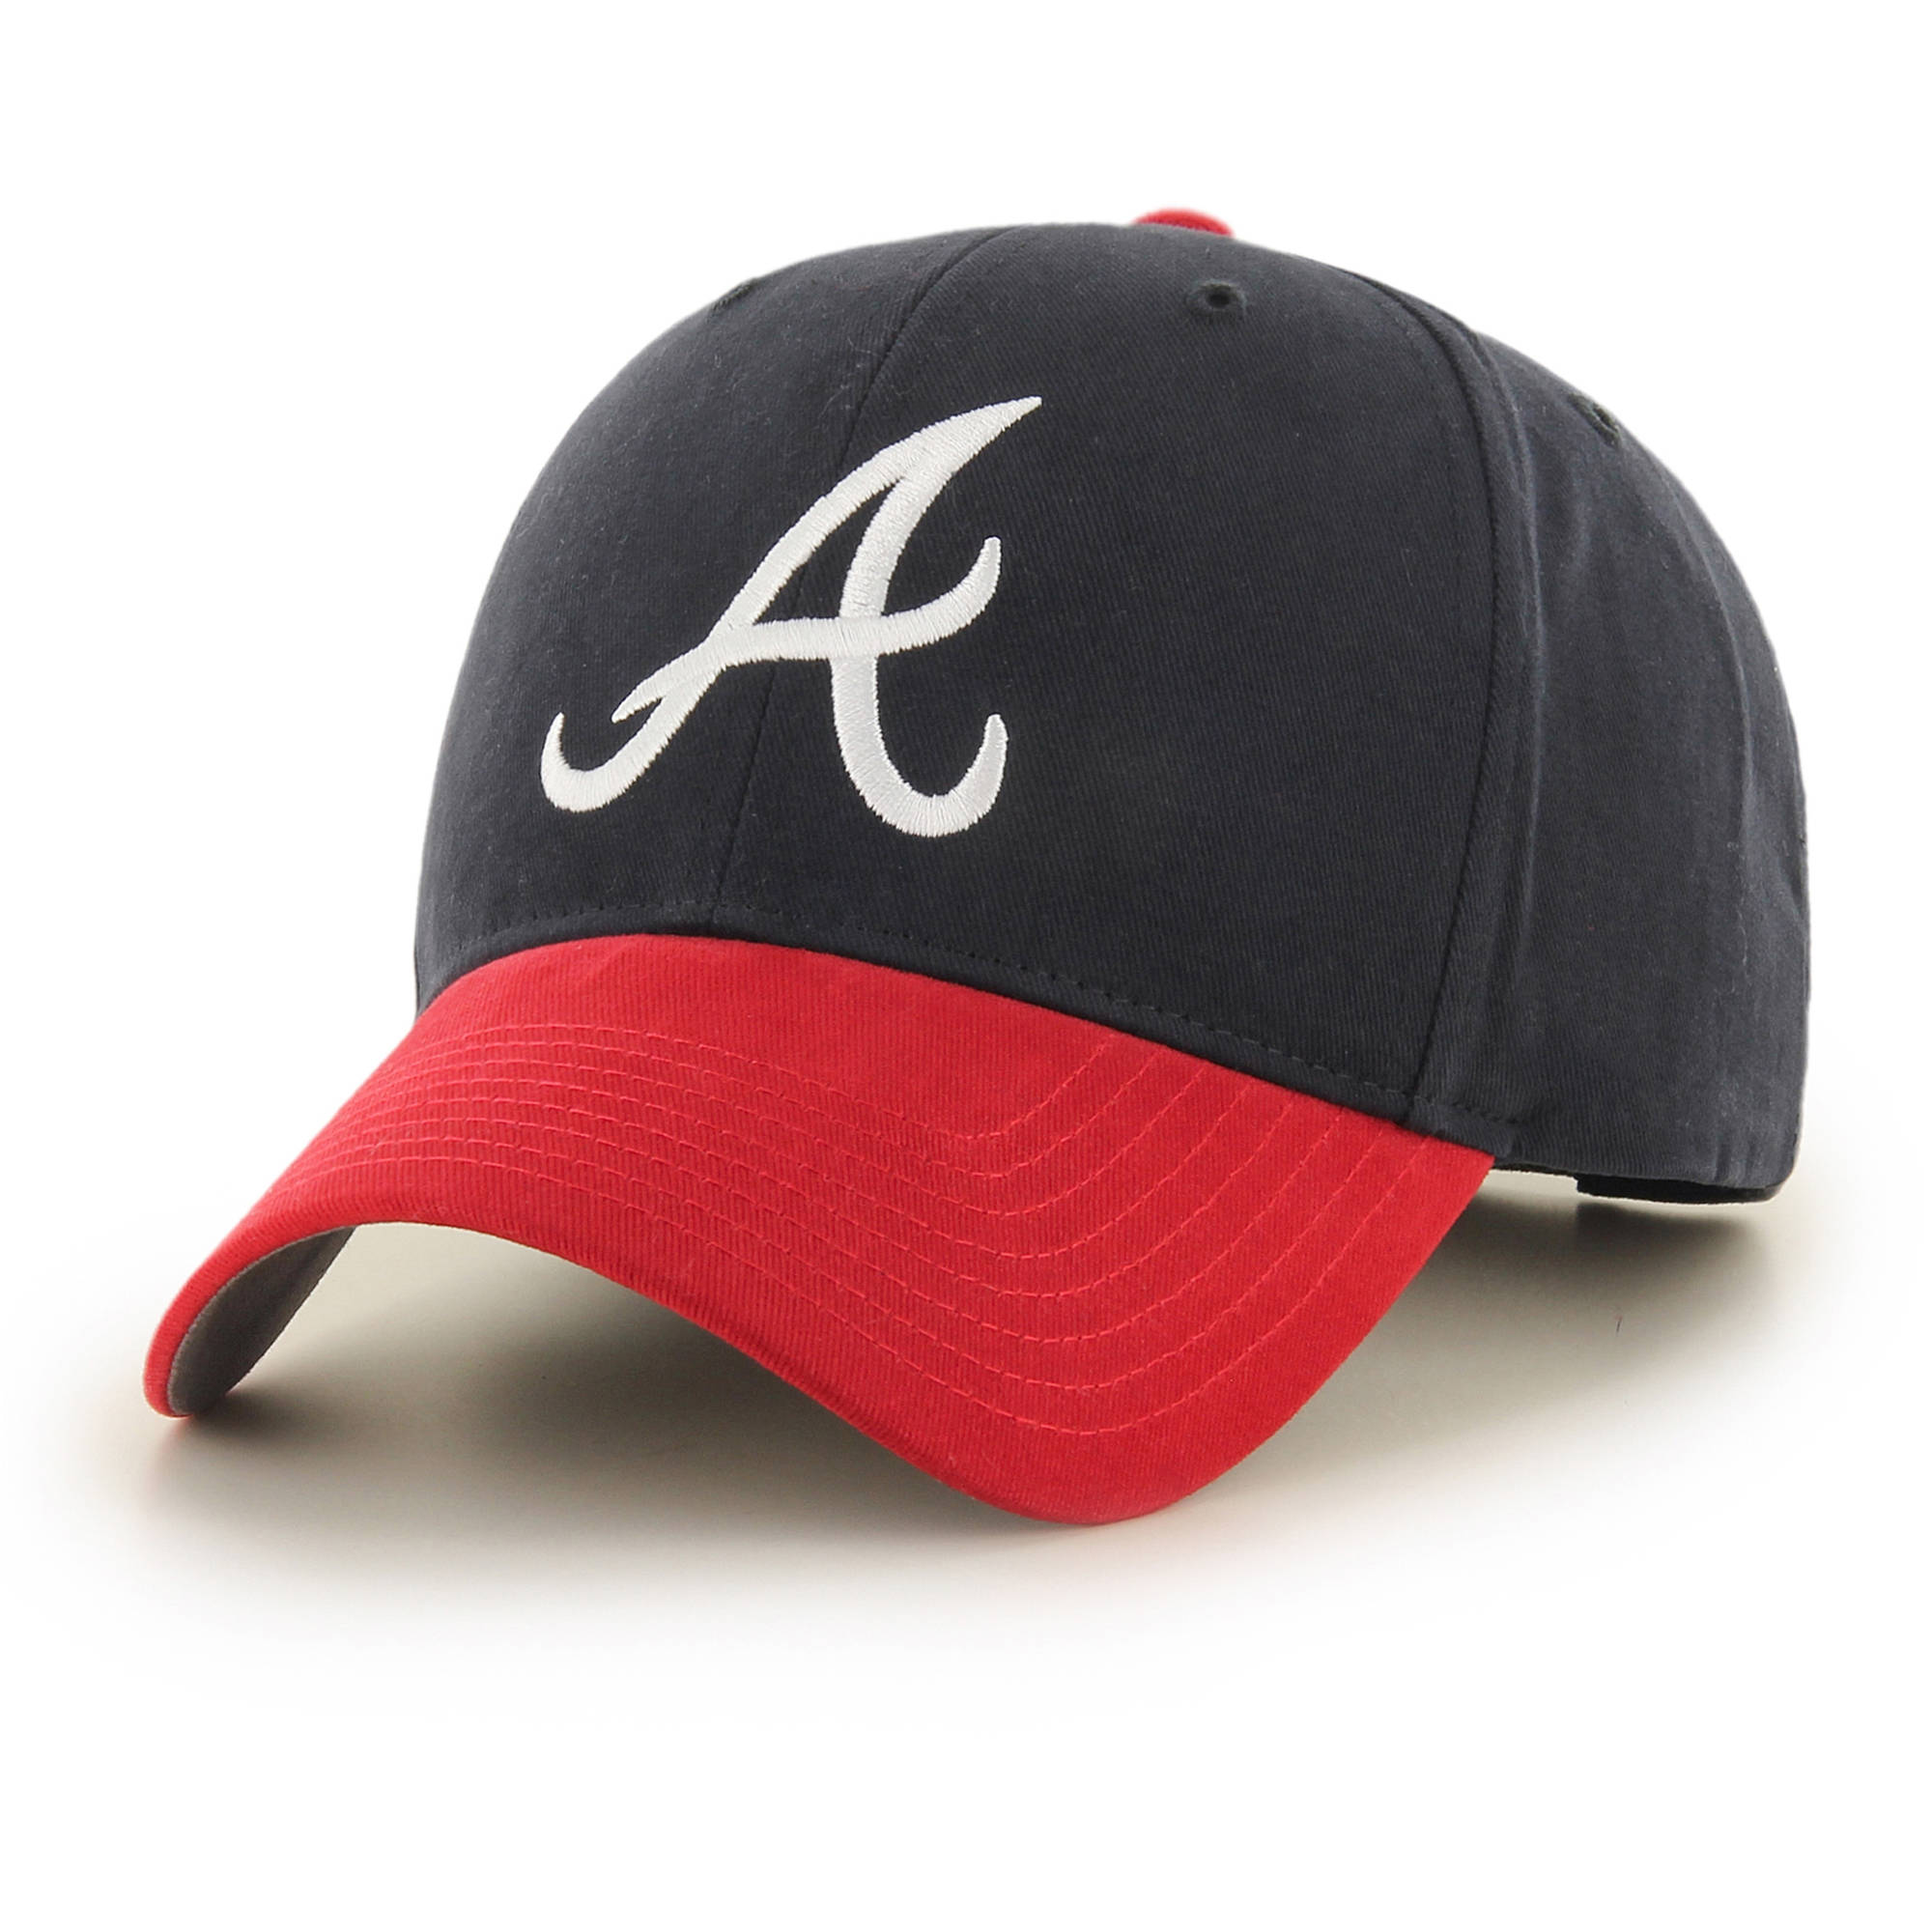 MLB Atlanta Braves Basic Cap / Hat by Fan Favorite